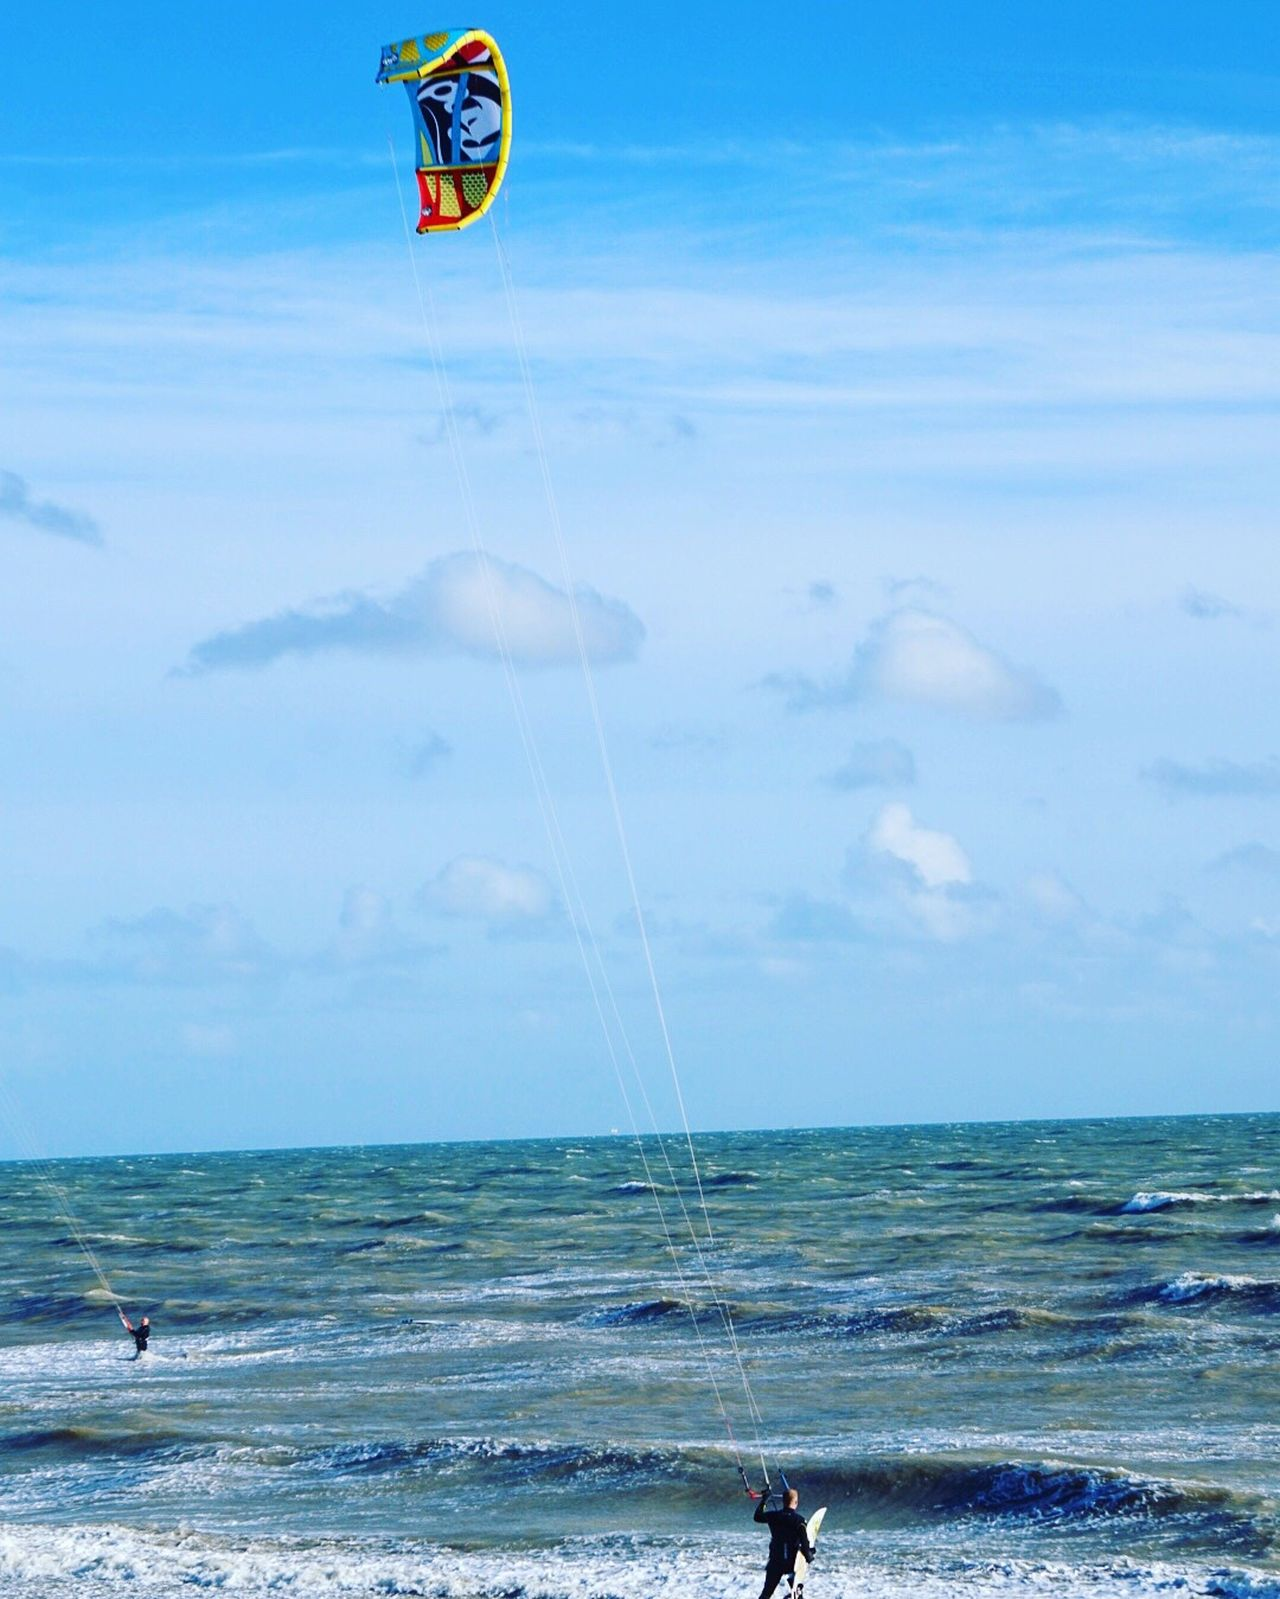 Kitesurfing 3 Sea Leisure Activity Adventure Real People Horizon Over Water Sky Beach Nature Extreme Sports Beauty In Nature Kiteboarding Flying Vacations Water Scenics Sport Outdoors Lifestyles Day Cloud - Sky Surfing Kitesurfing Worthing